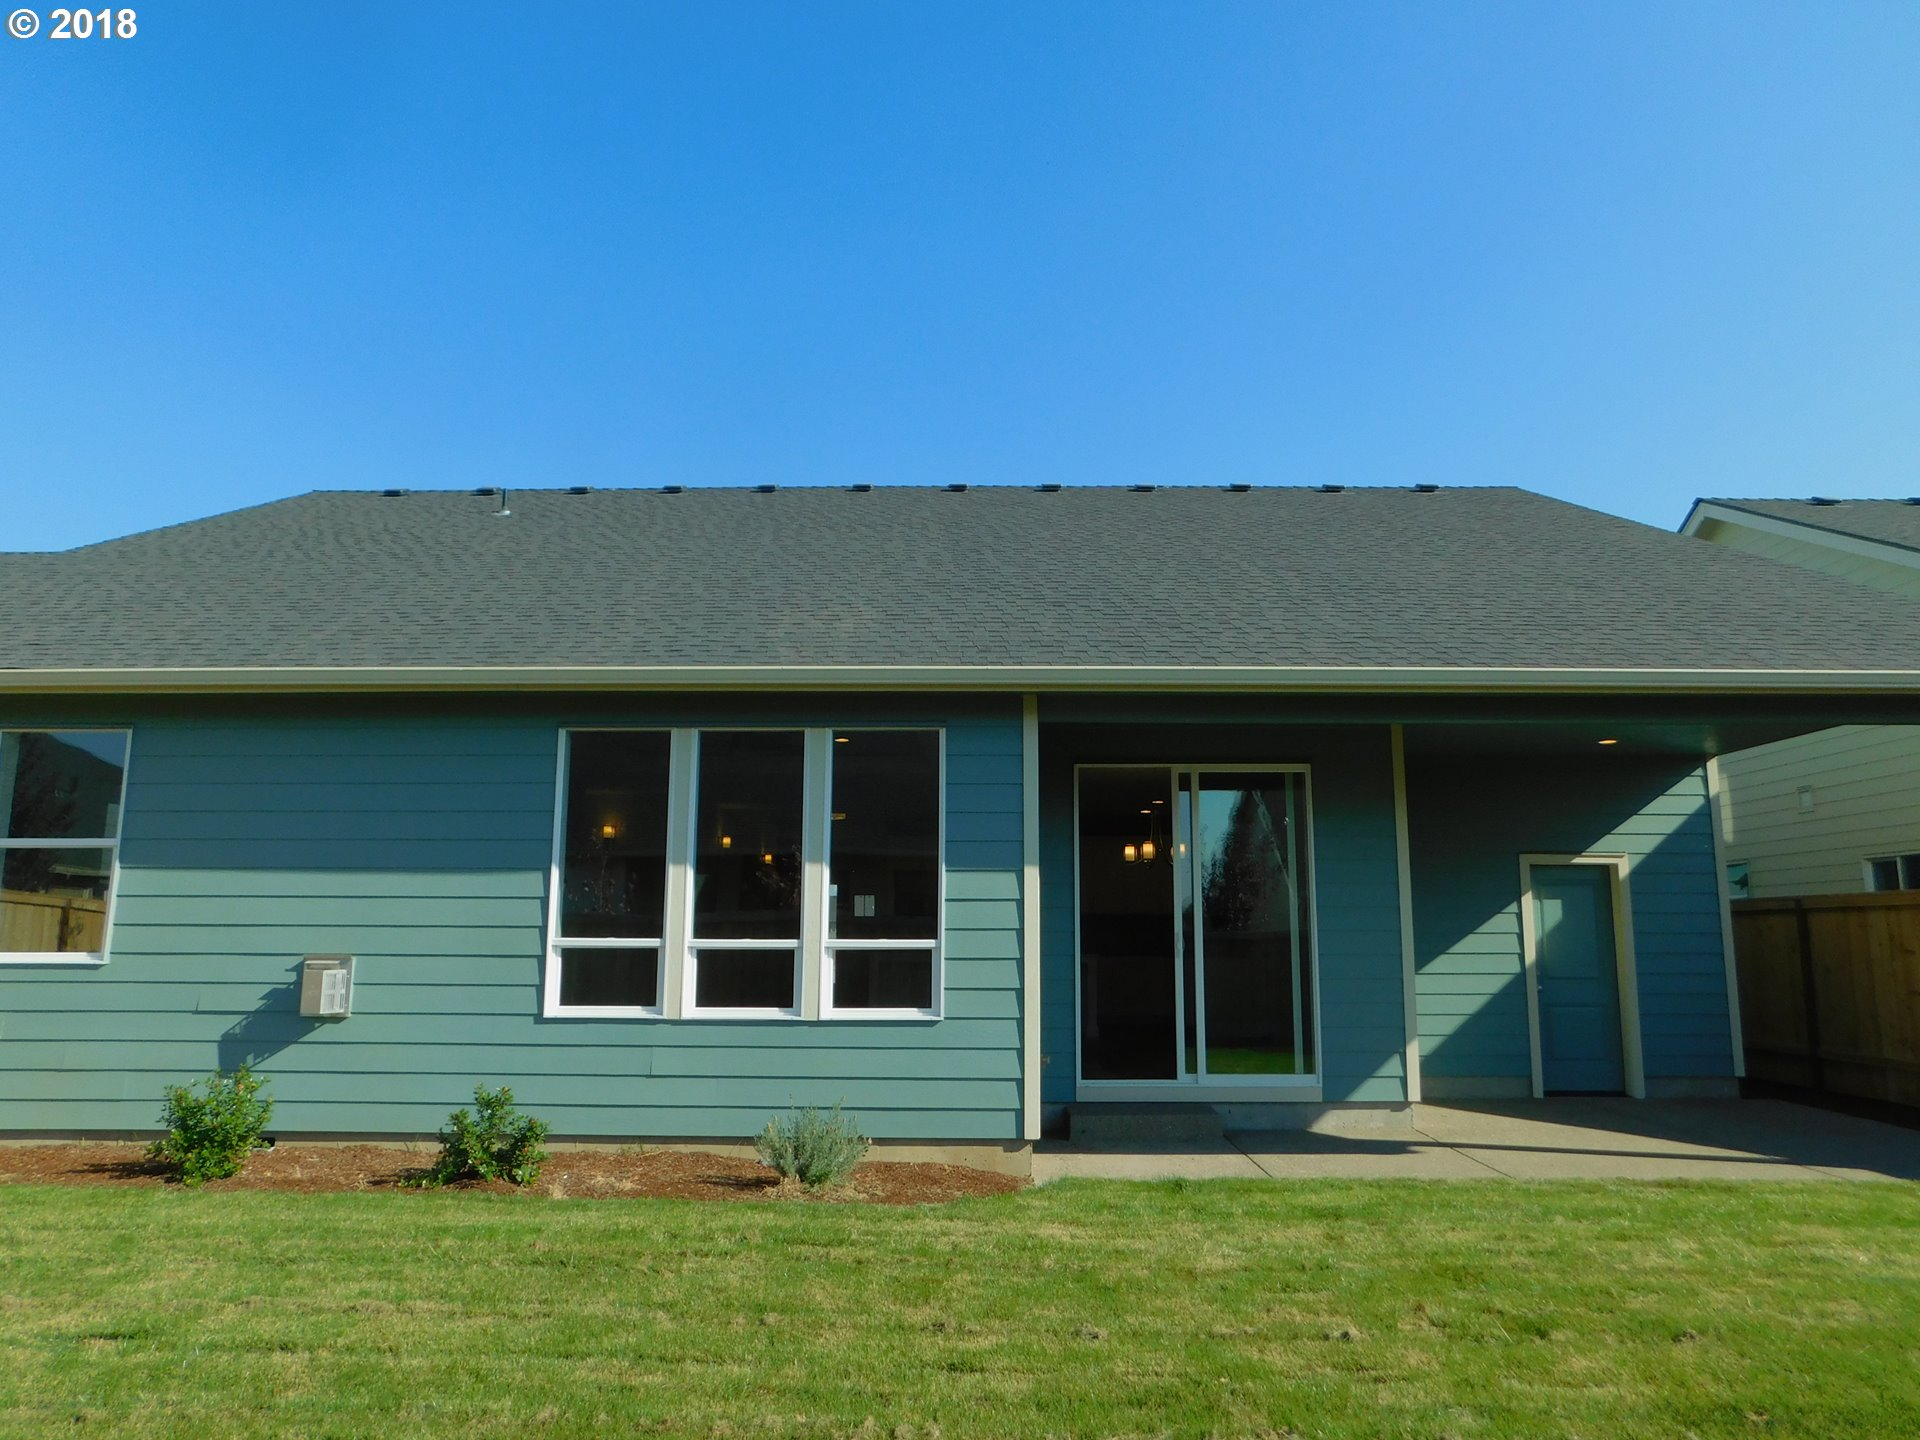 569 SE LINES ST Dallas, OR 97338 - MLS #: 18526251